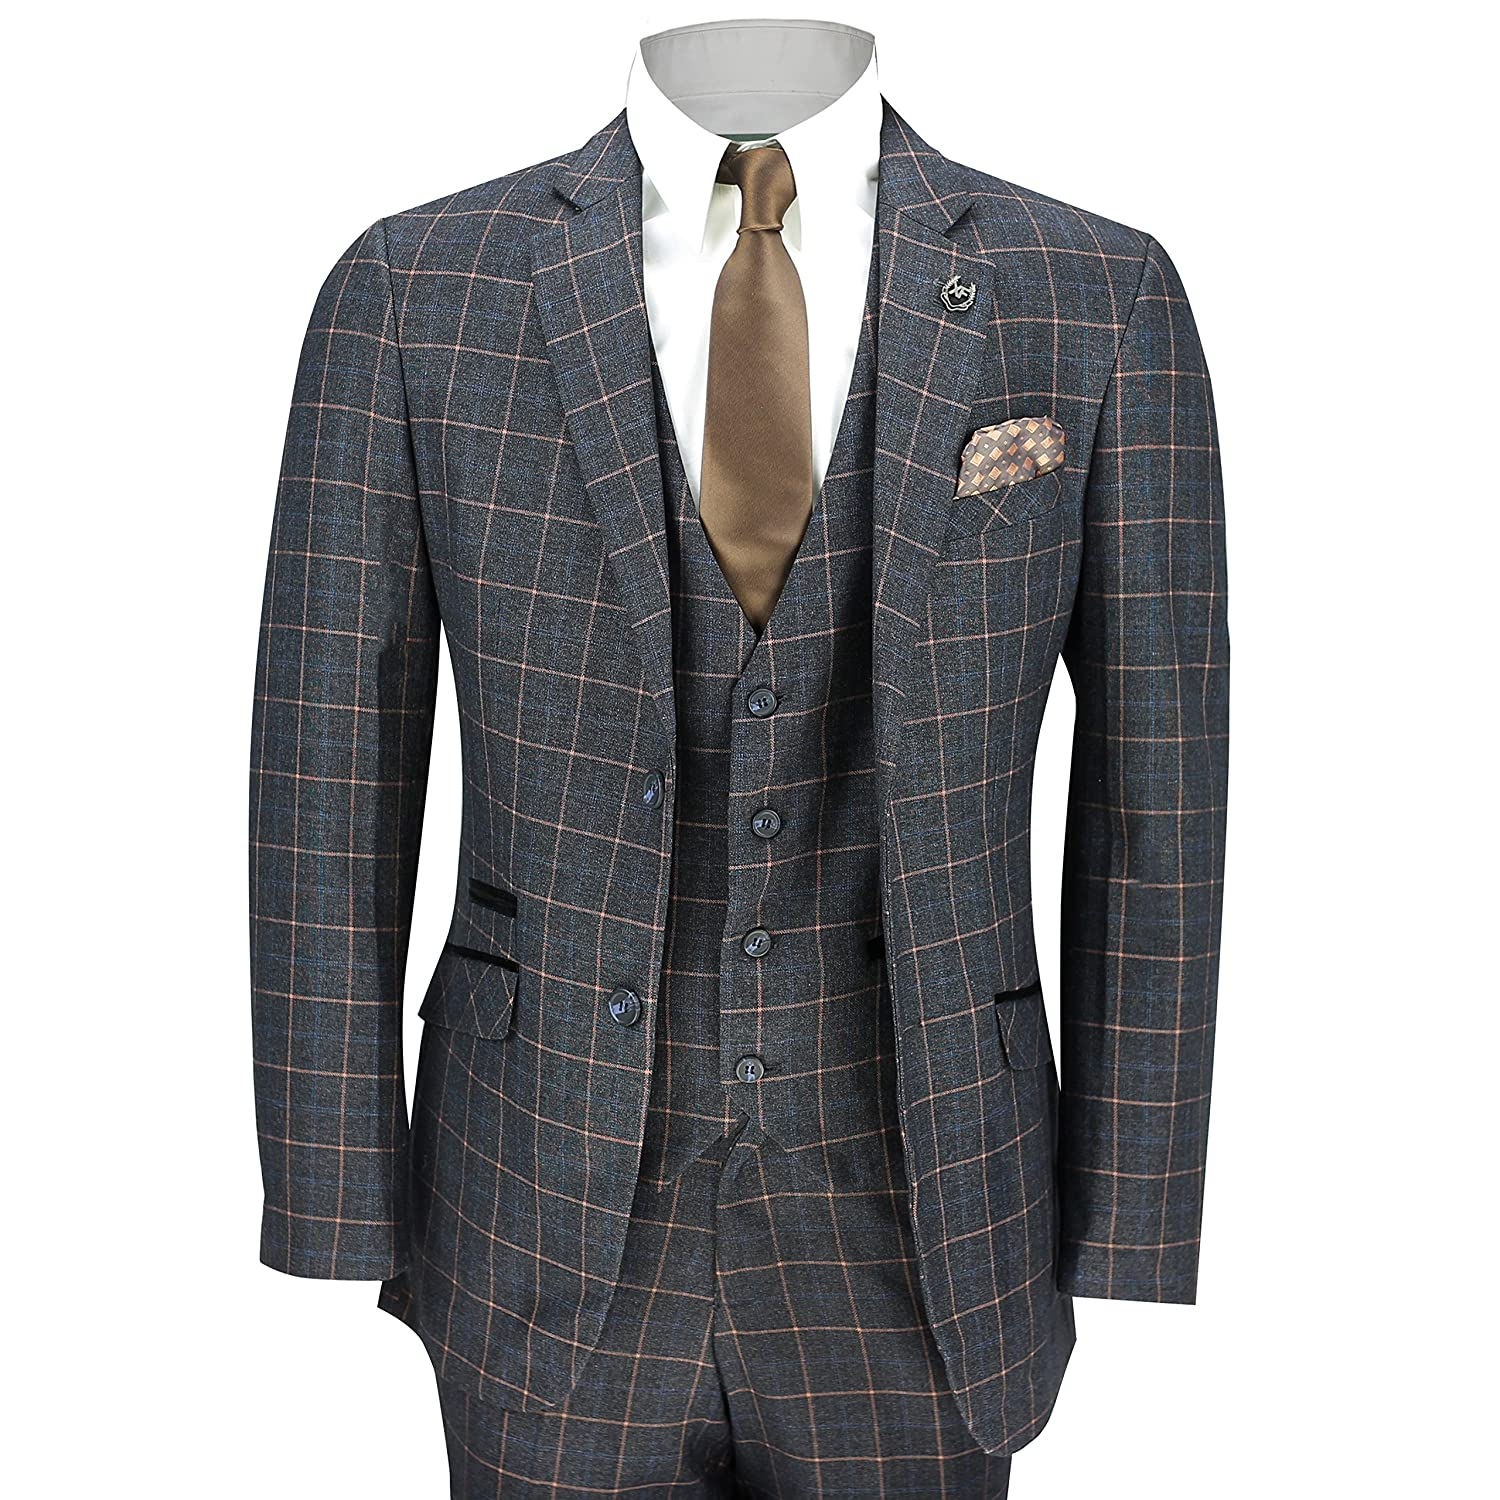 1920s Men's Fashion UK | Peaky Blinders Clothing UK- XPOSED Mens 3 Piece Blue Orange Window Check on Charcoal Grey Retro Smart Tailored Fit Vintage Suit £96.99 AT vintagedancer.com